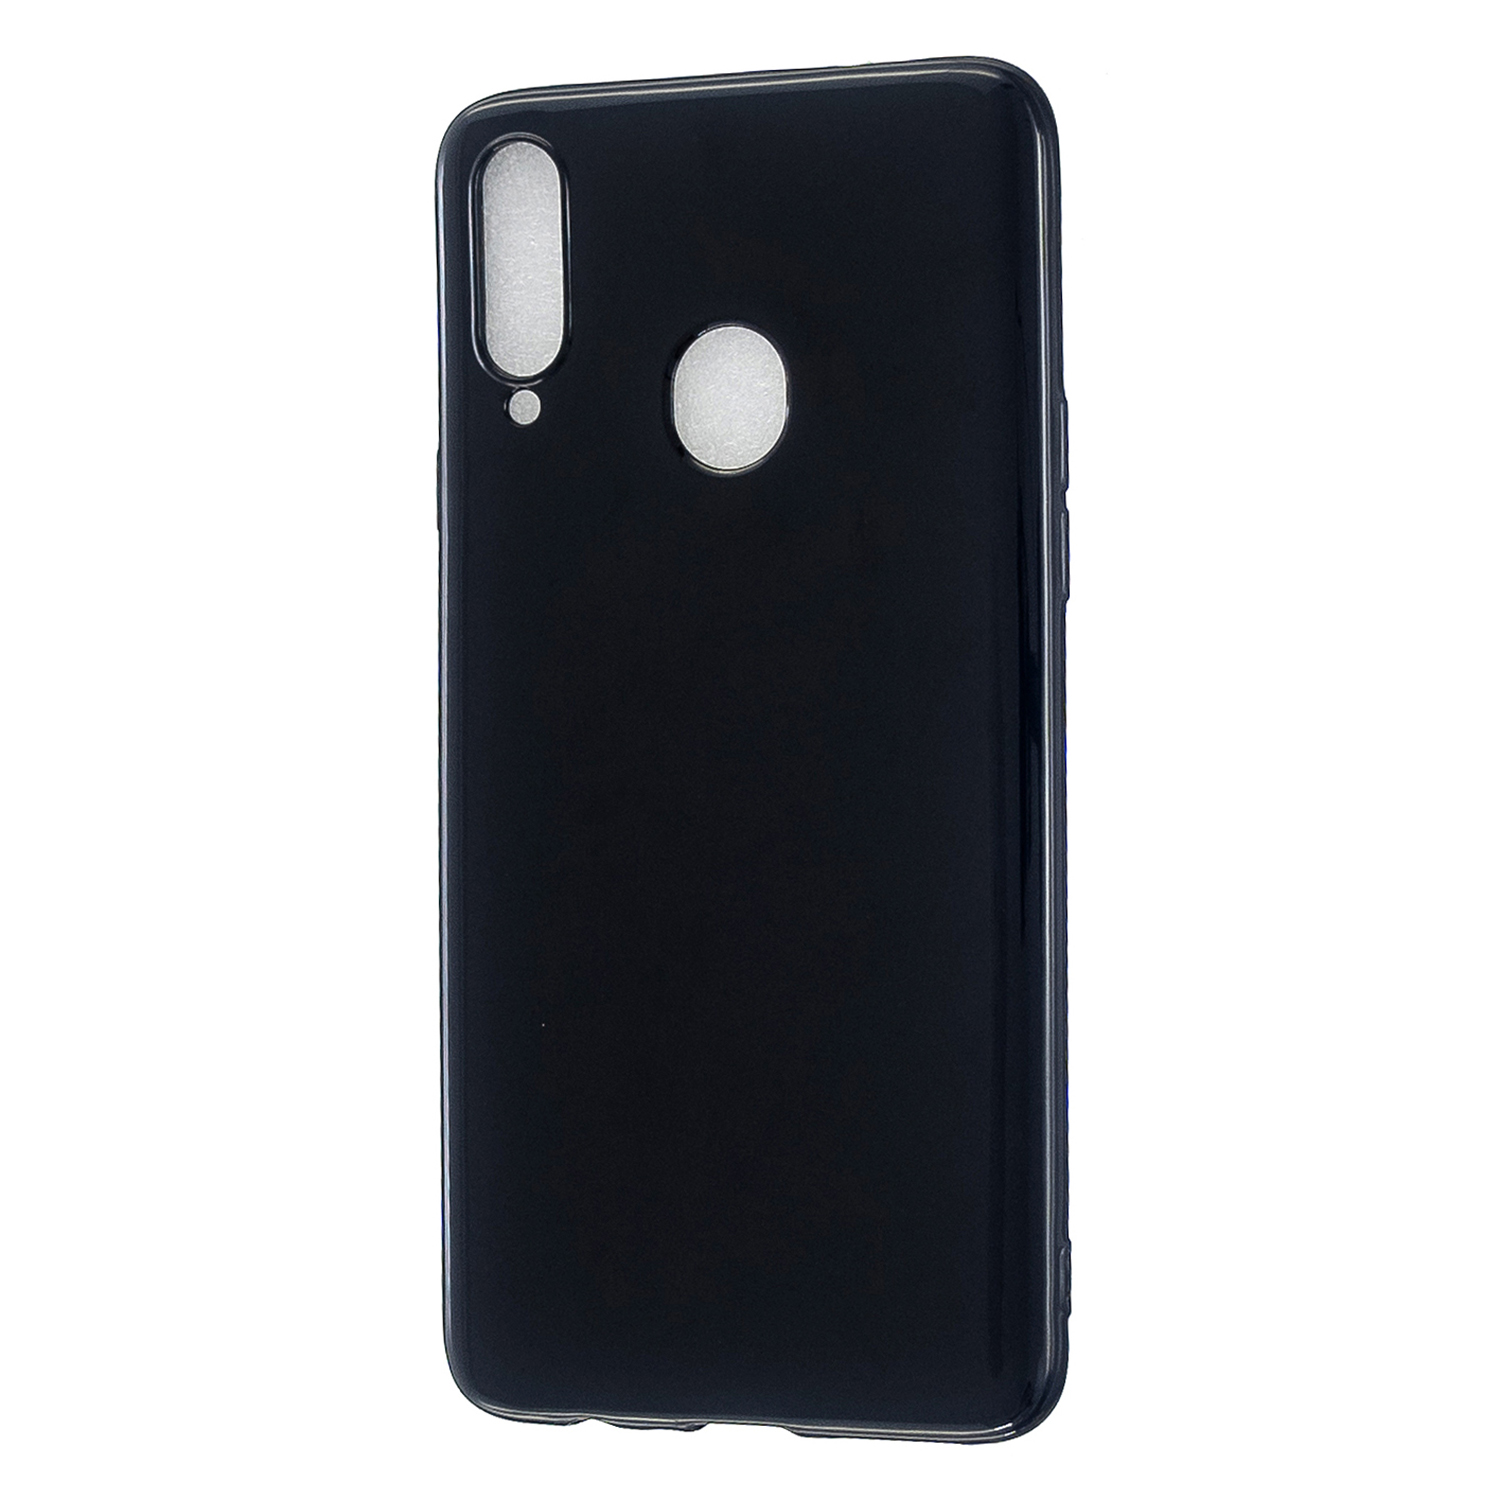 For Samsung A10S/A20S Cellphone Cover Soft TPU Phone Case Simple Profile Full Body Protection Anti-scratch Shell Bright black